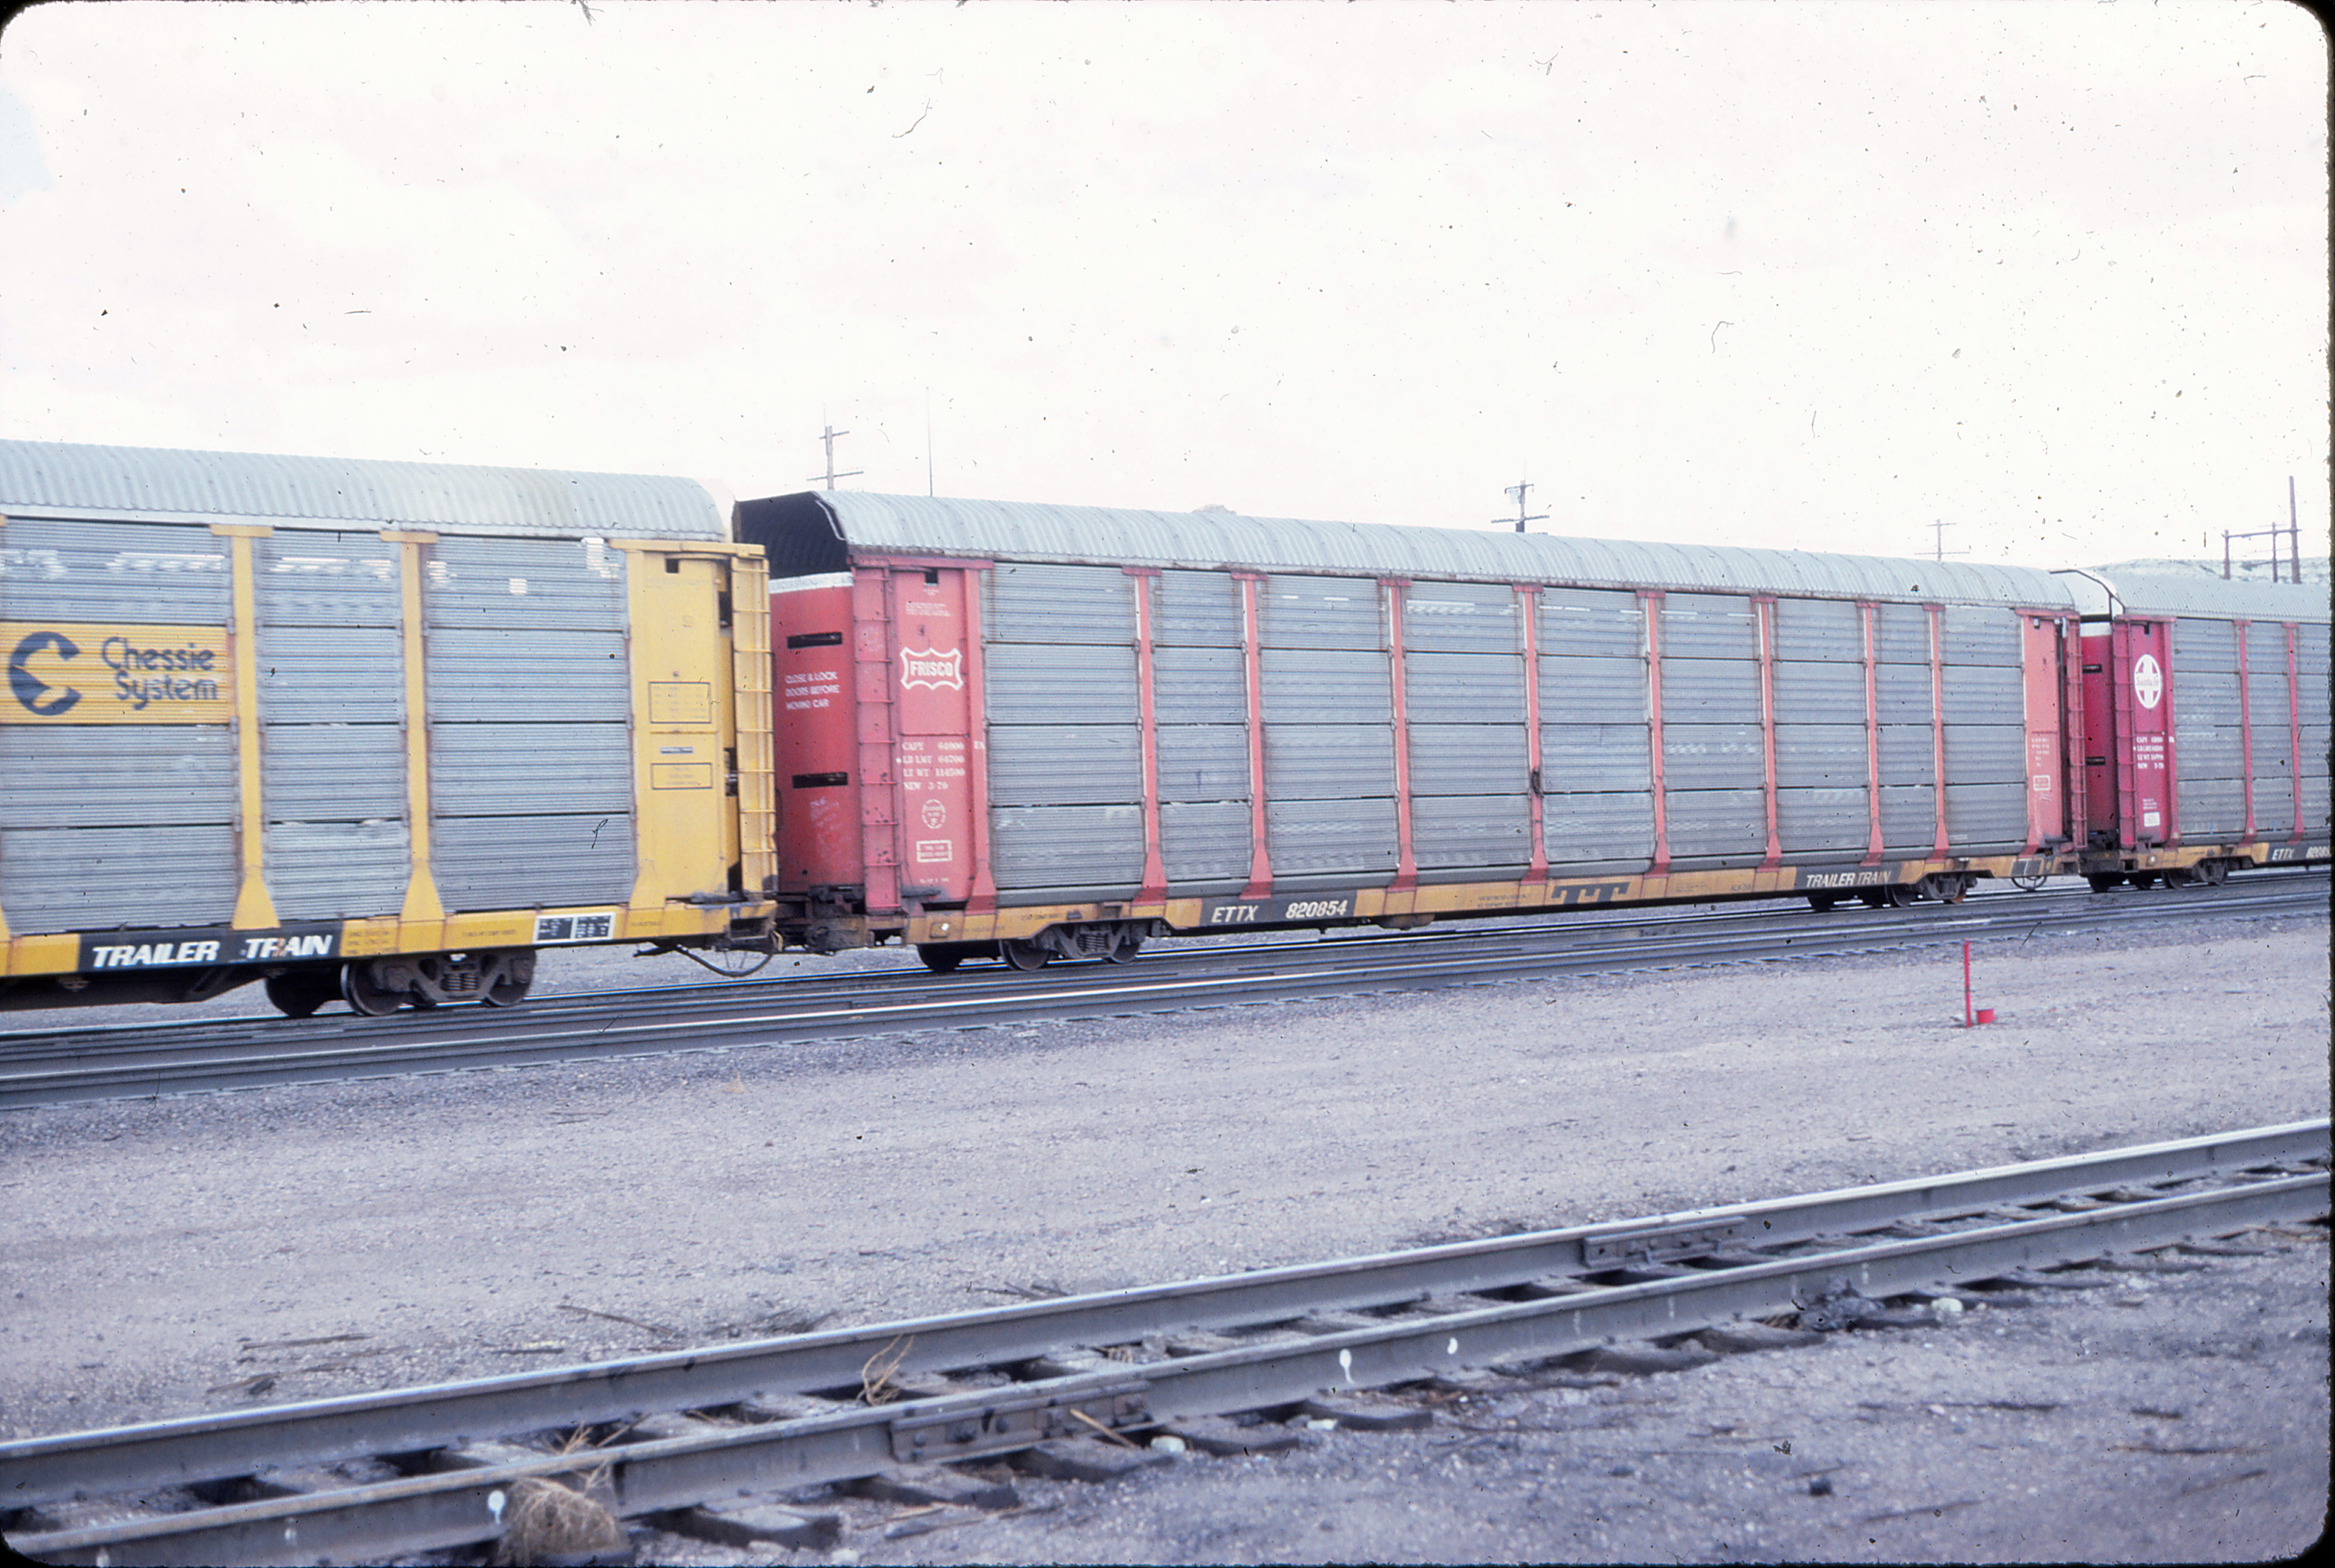 Autorack 820854 at Green River, Wyoming in August 1984